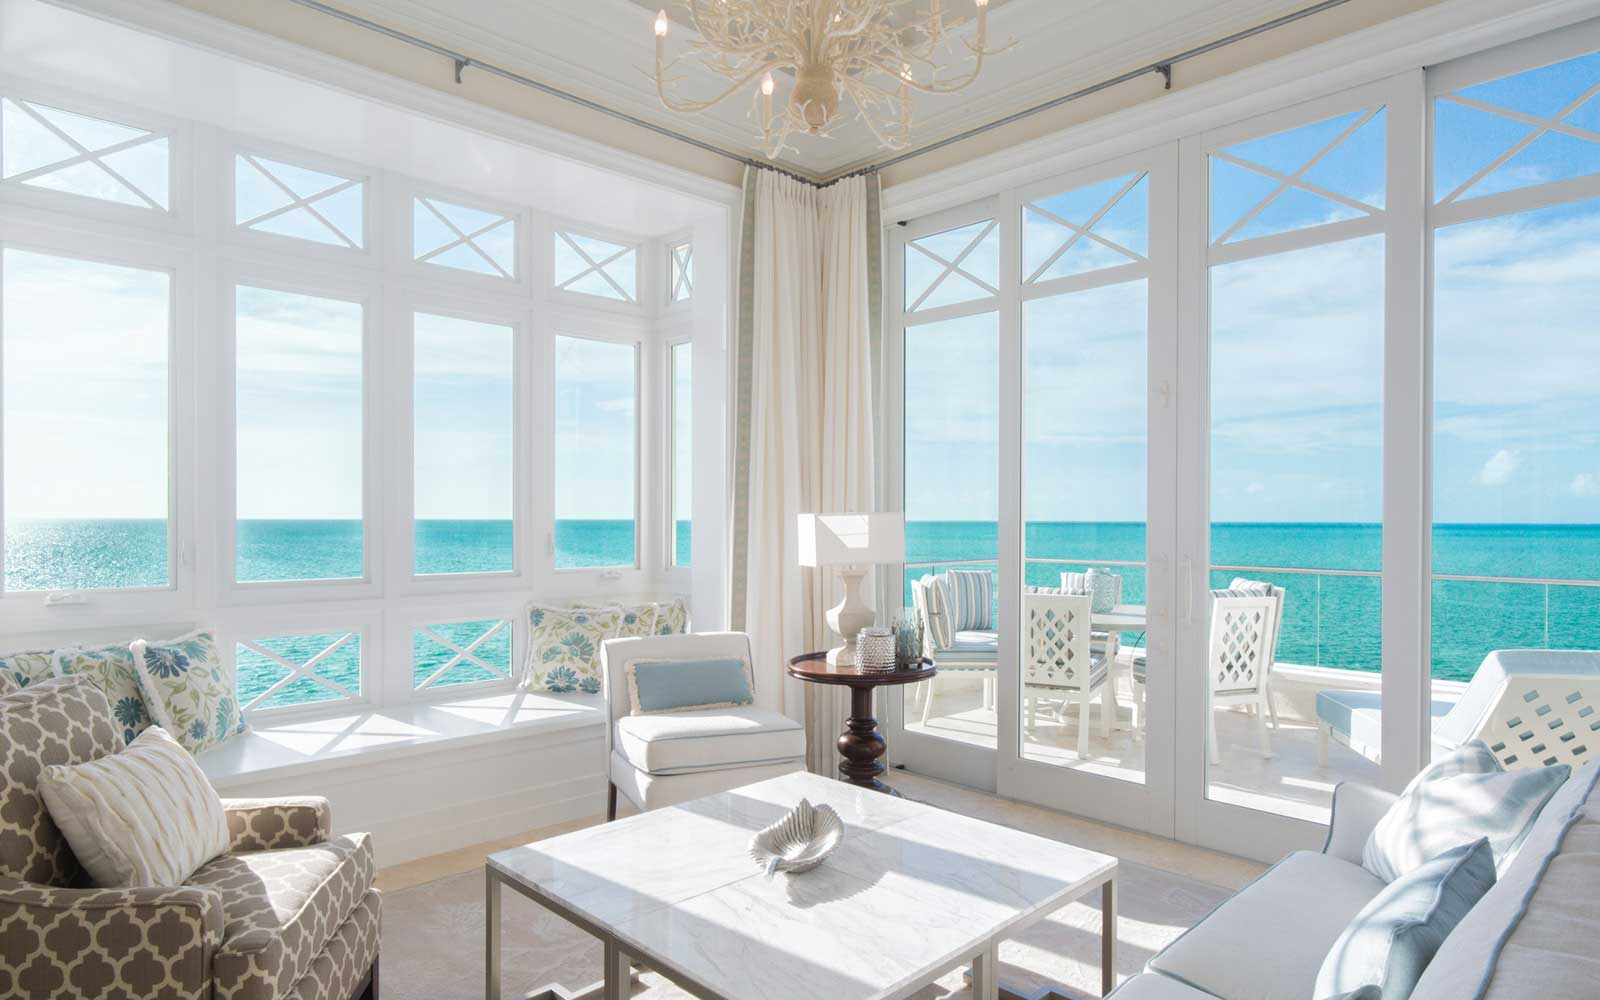 The Shore Club luxury accommodations in Providenciales, Turks & Caicos